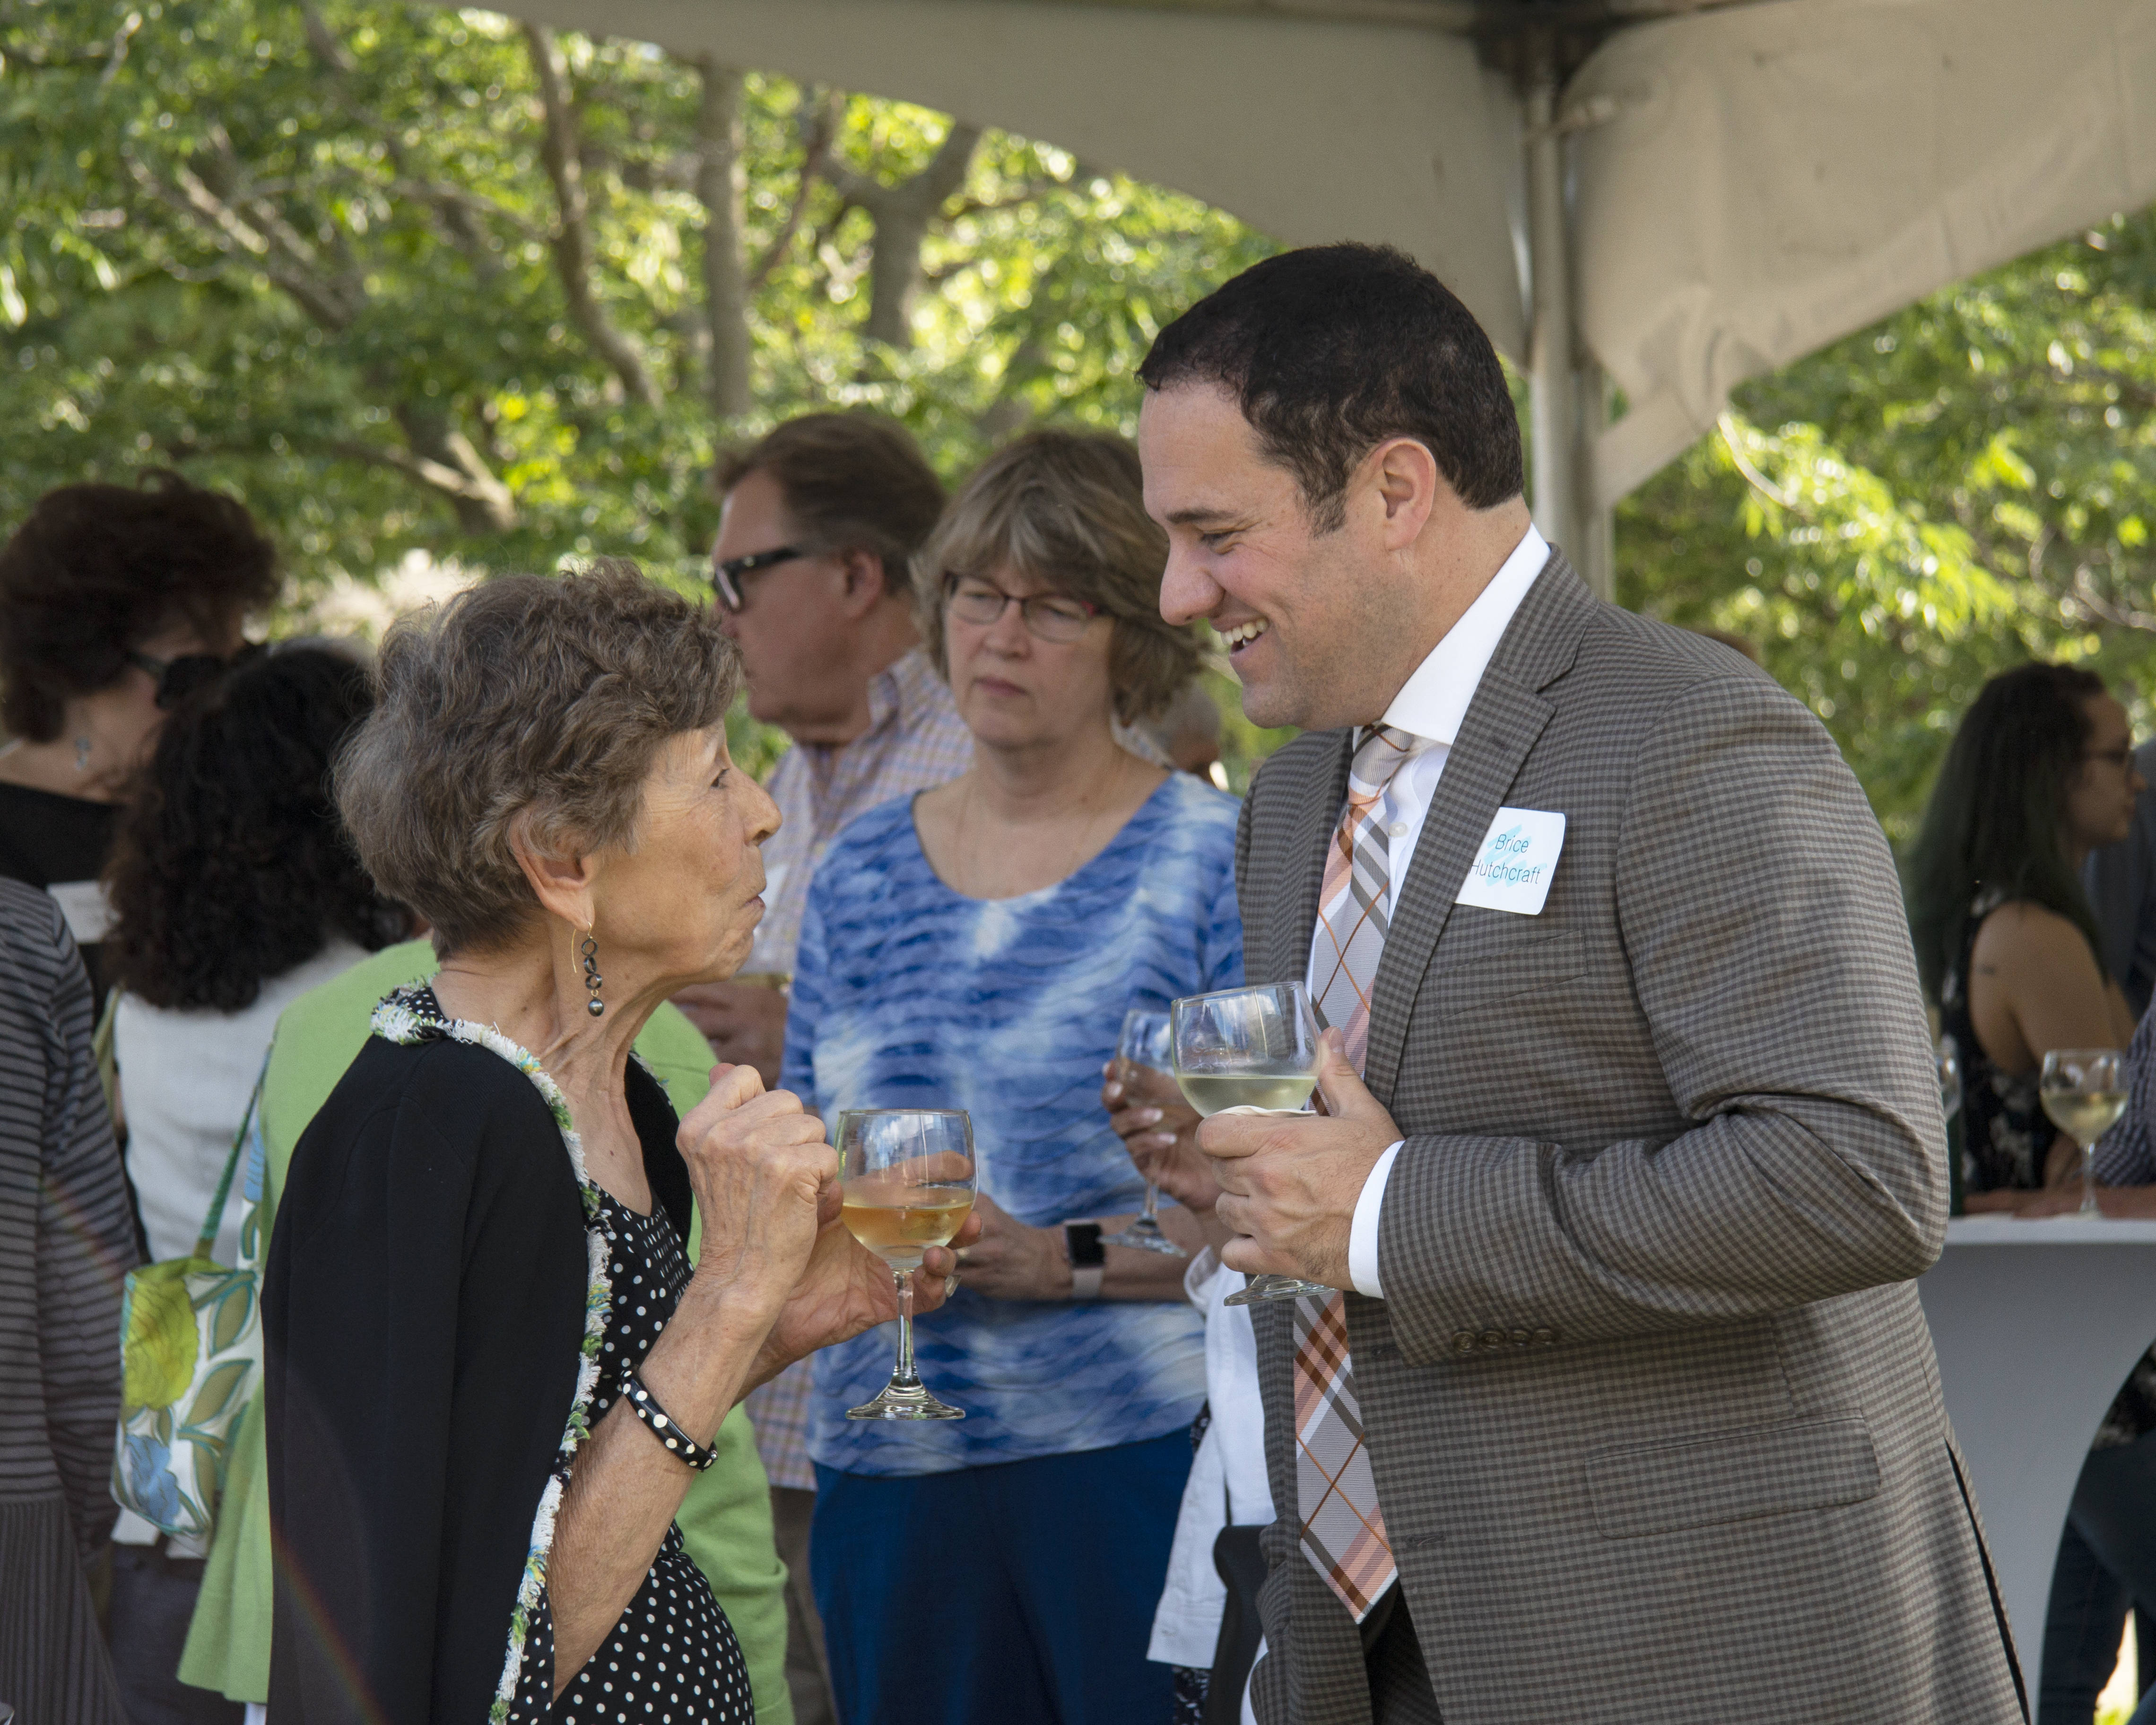 Council Members Jane Myers and Brice Hutchraft enjoy the summer Garden Party, 2019